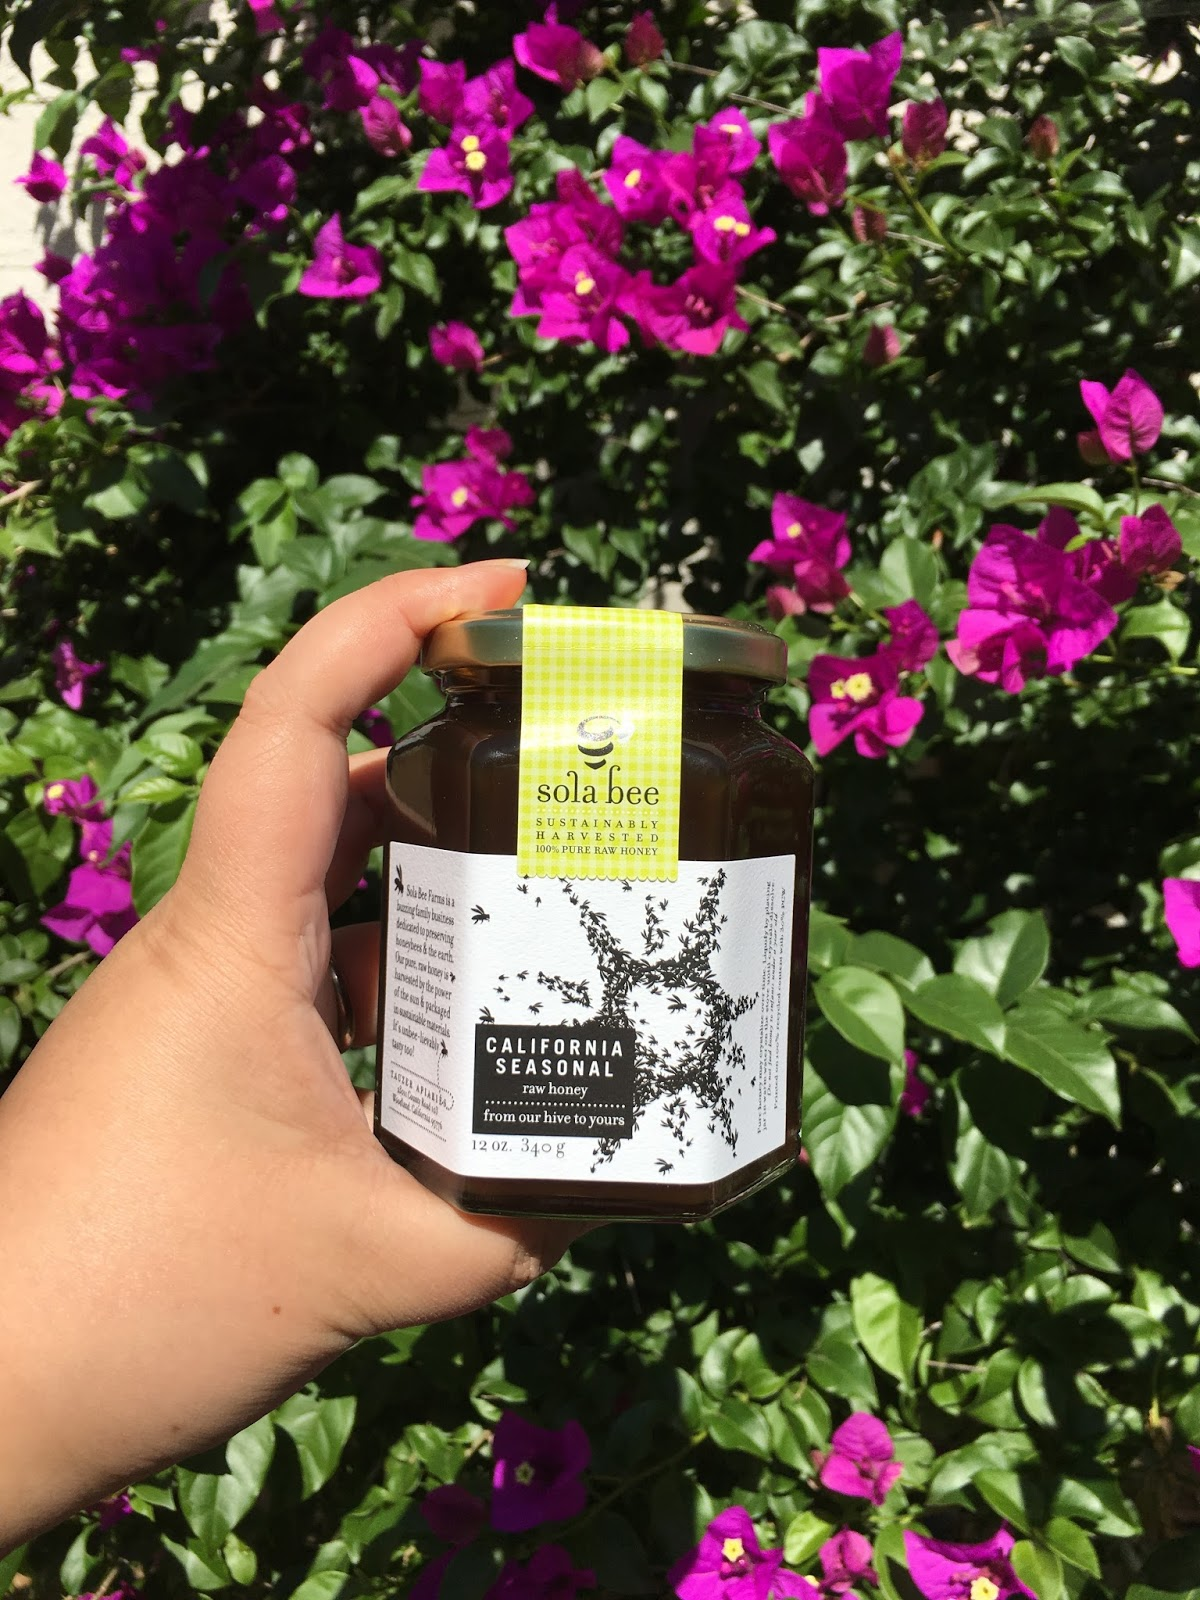 AshleyNewell me: Sola Bee Farms: Using Honey to Combat Allergies